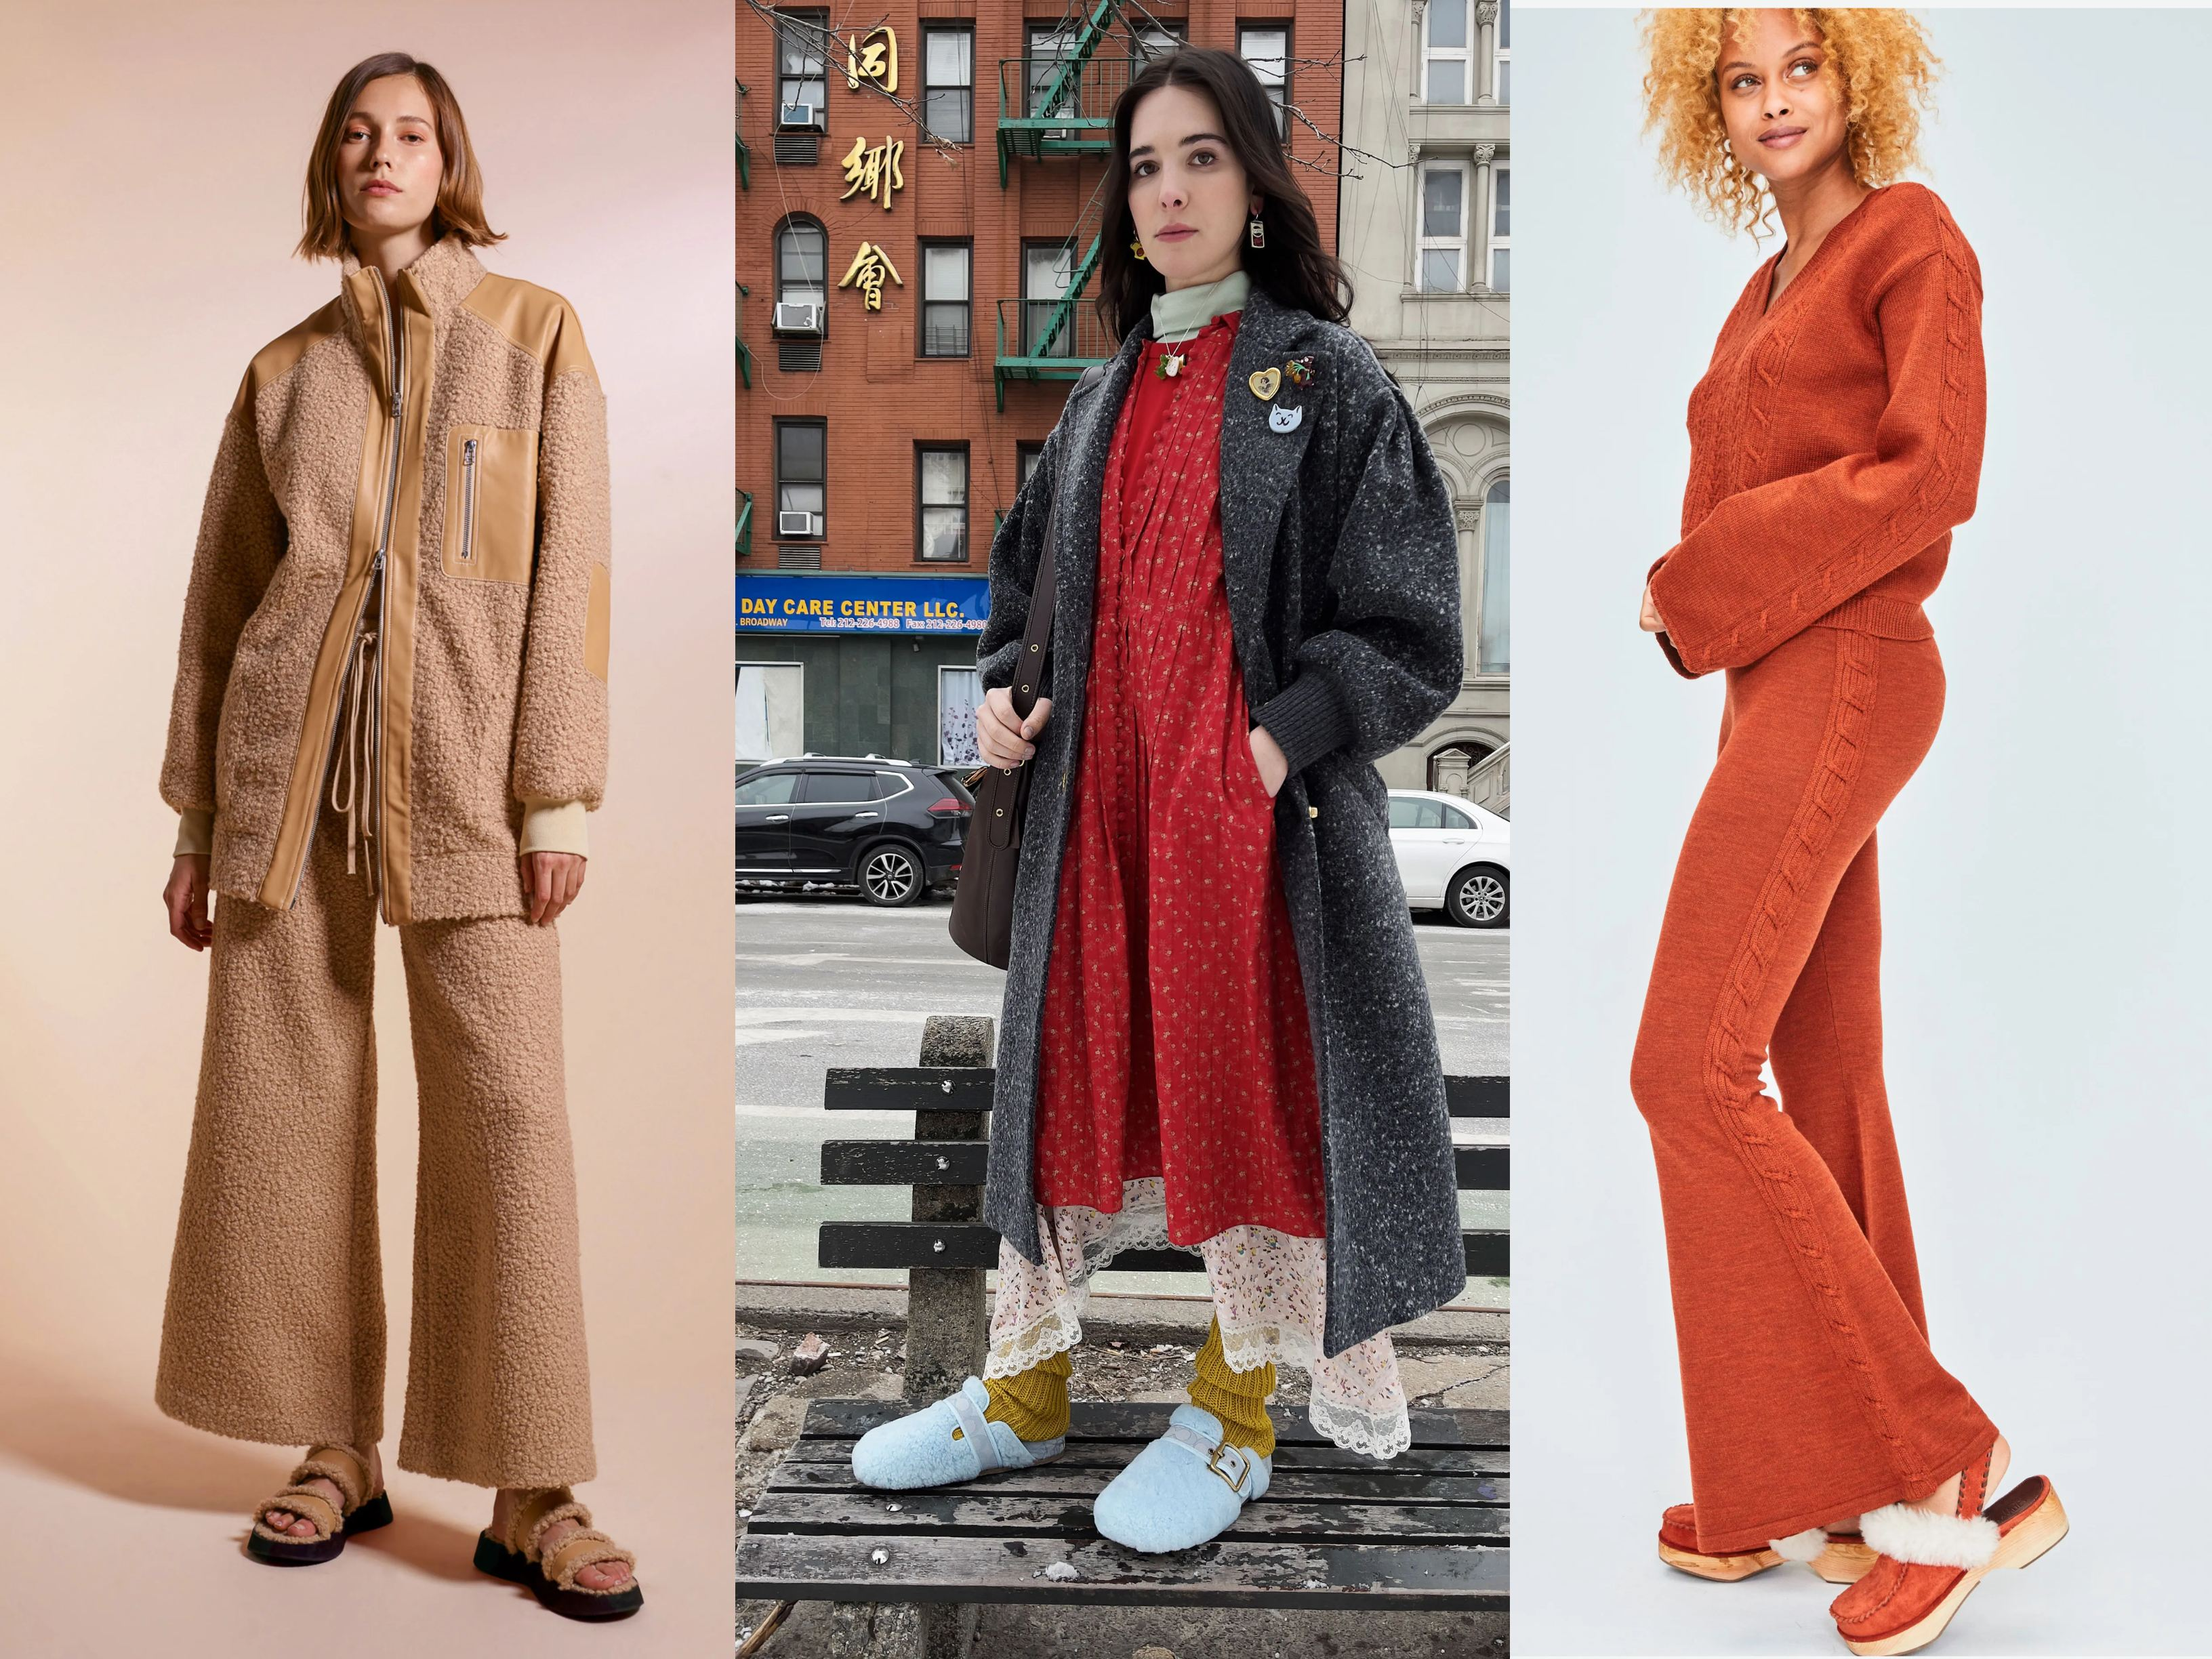 Models wearing AW21 Trends Slip on shoes